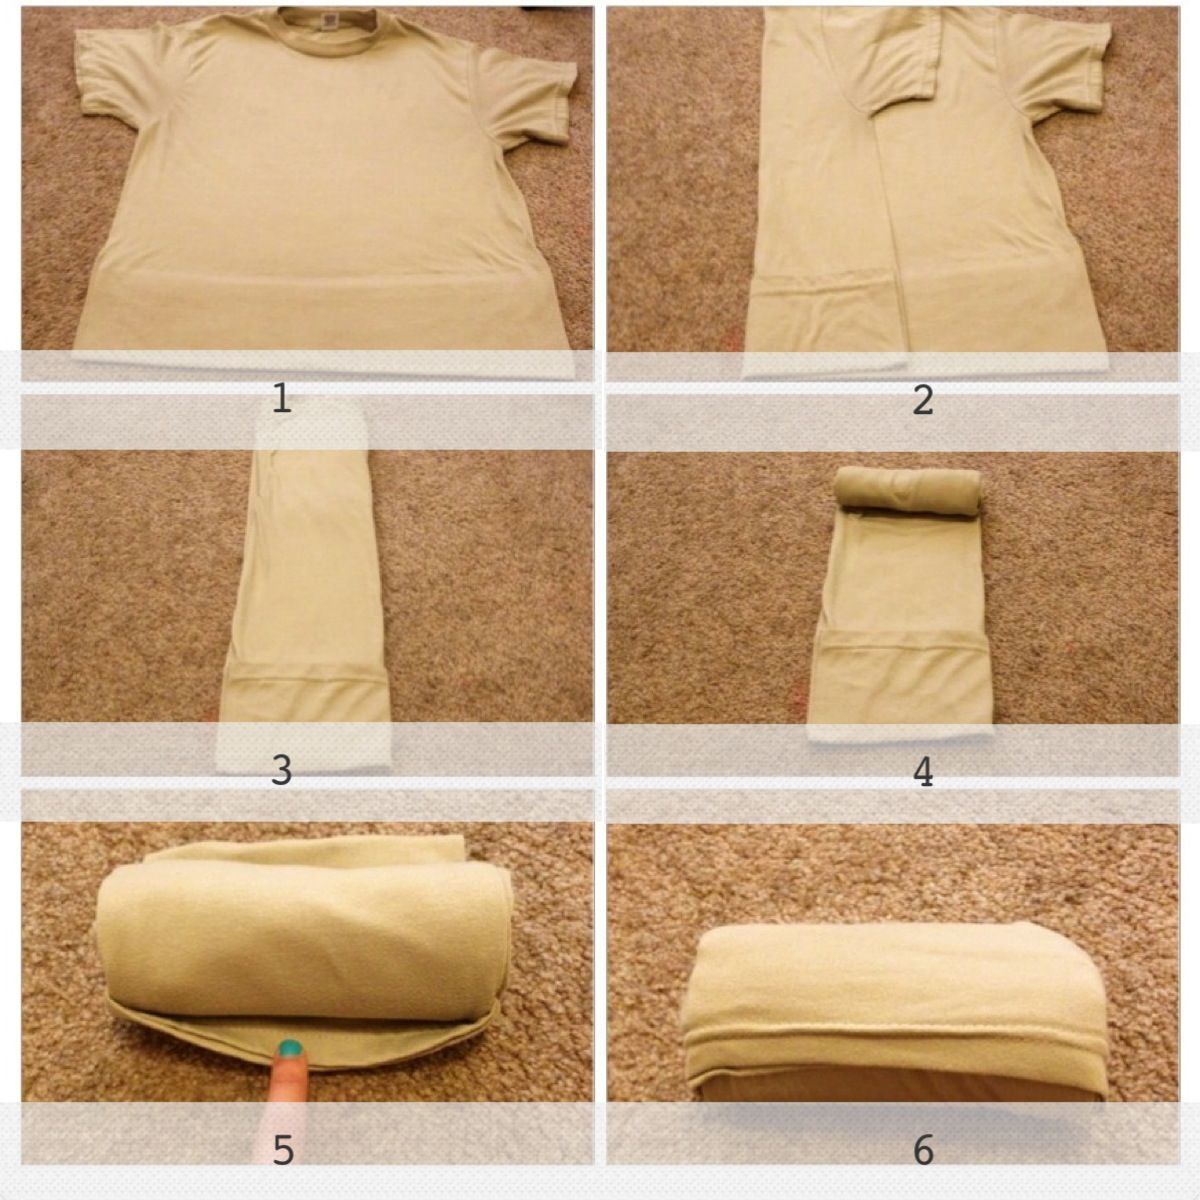 How To Fold Your Hubby S Tan Tshirts To Save Space When He